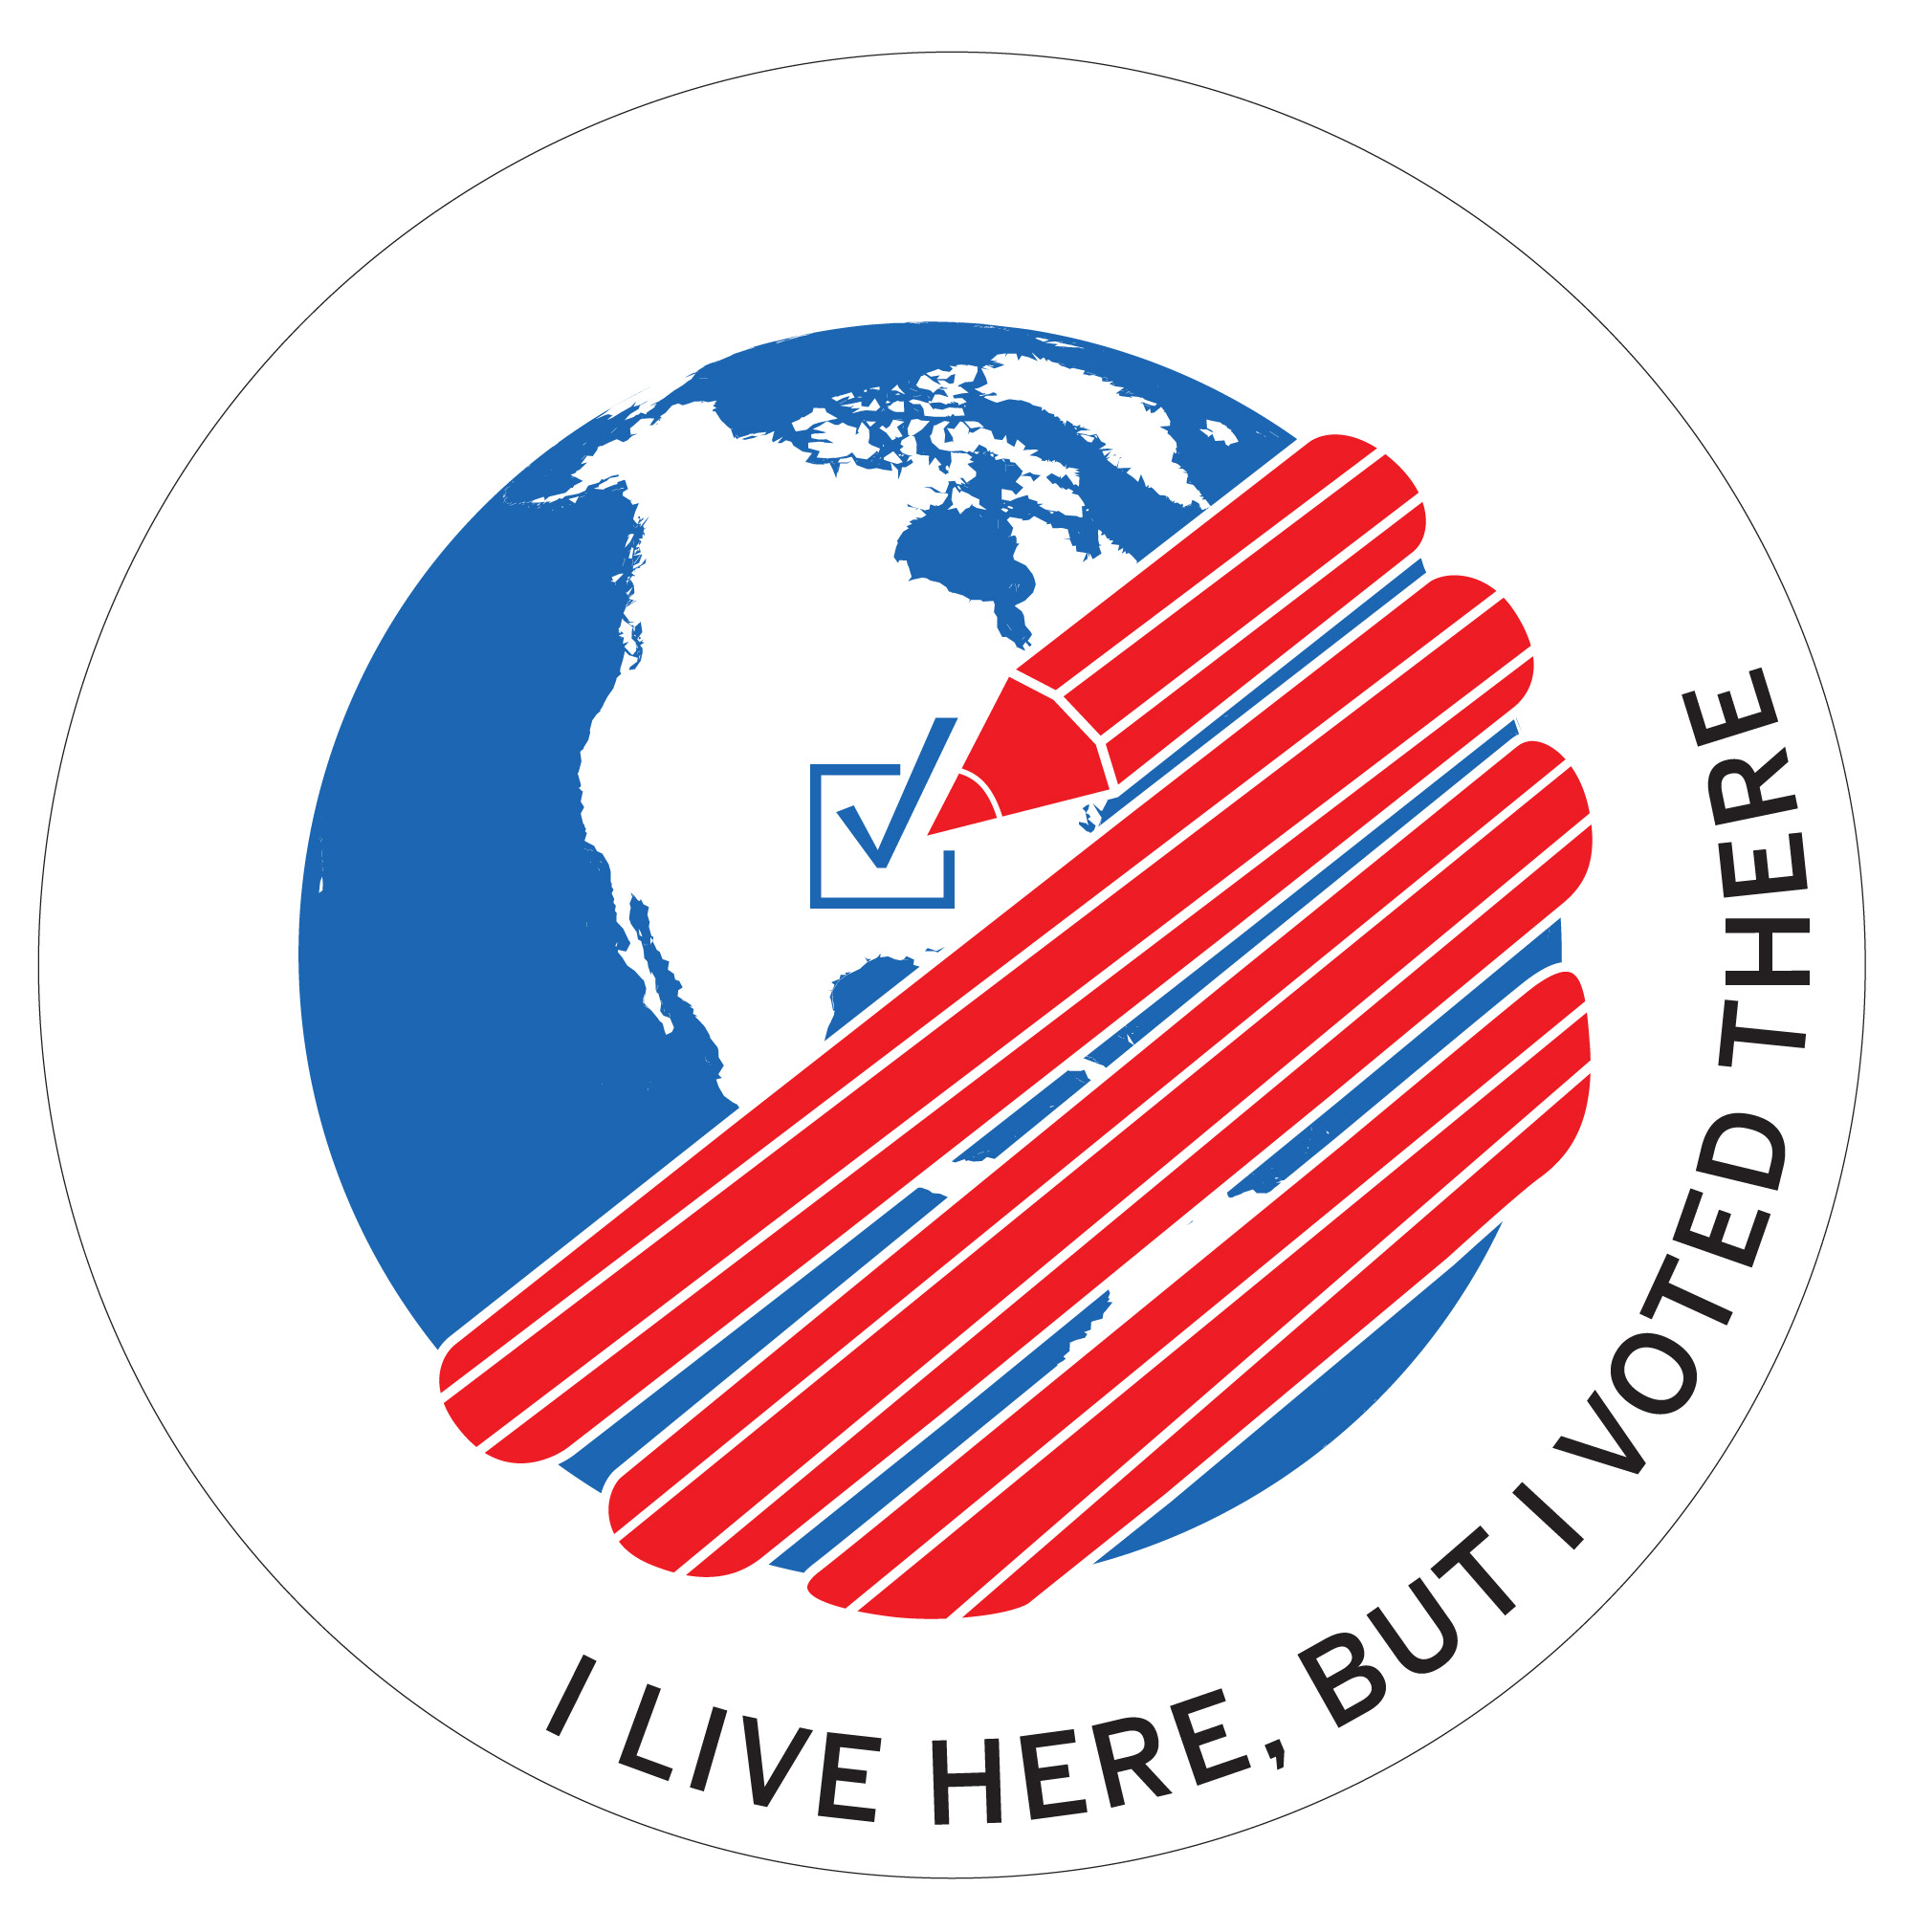 http://etc.ofthiswearesure.com/single%20sticker.jpg